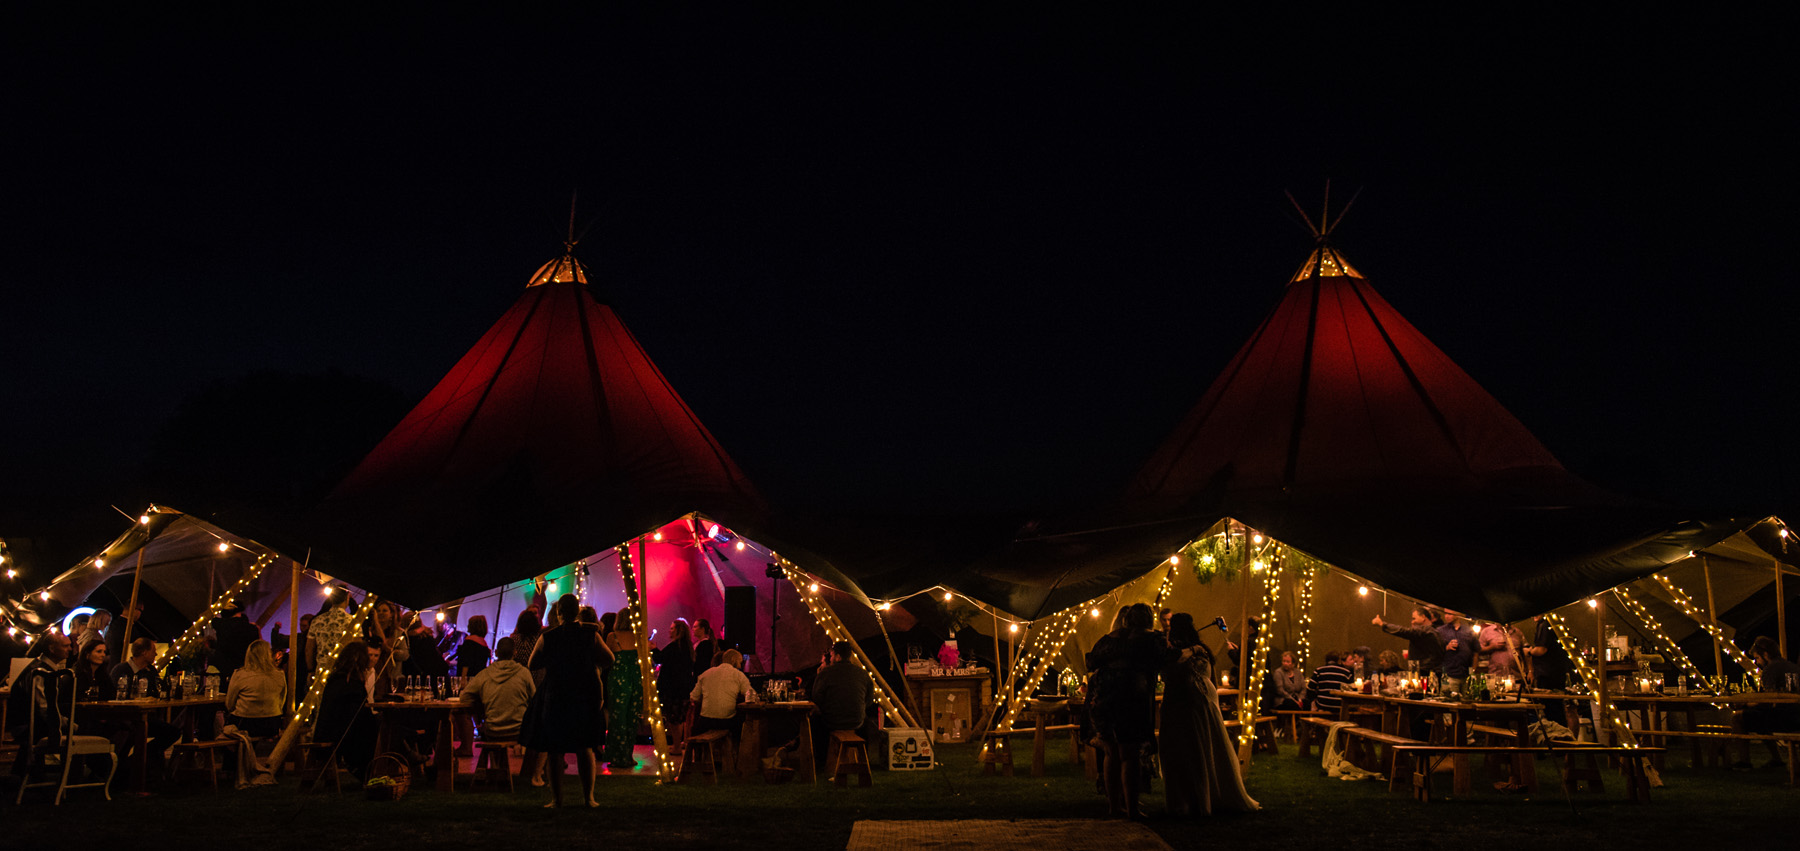 Tipi Lane - A night time view.